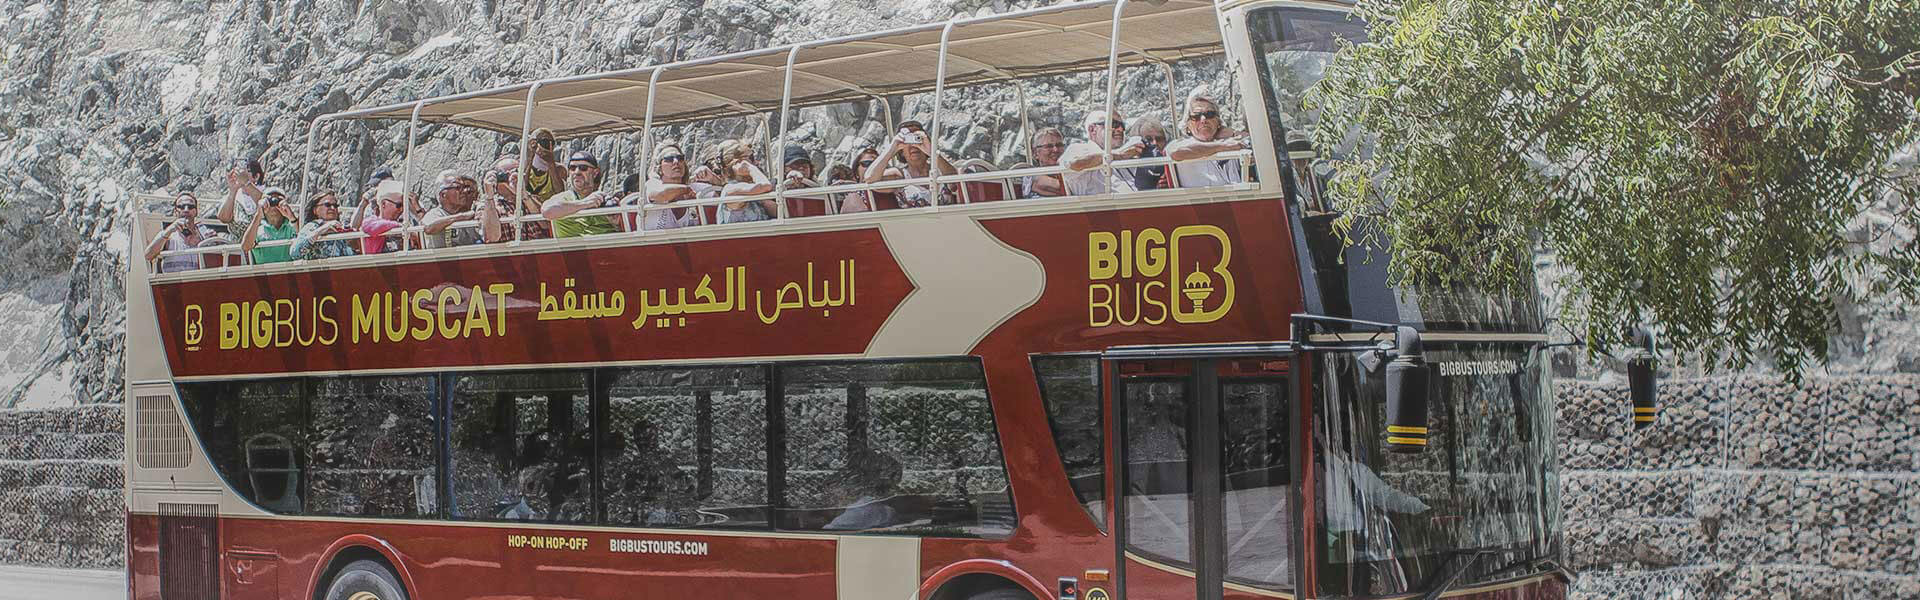 Big Bus Tour in Muscat